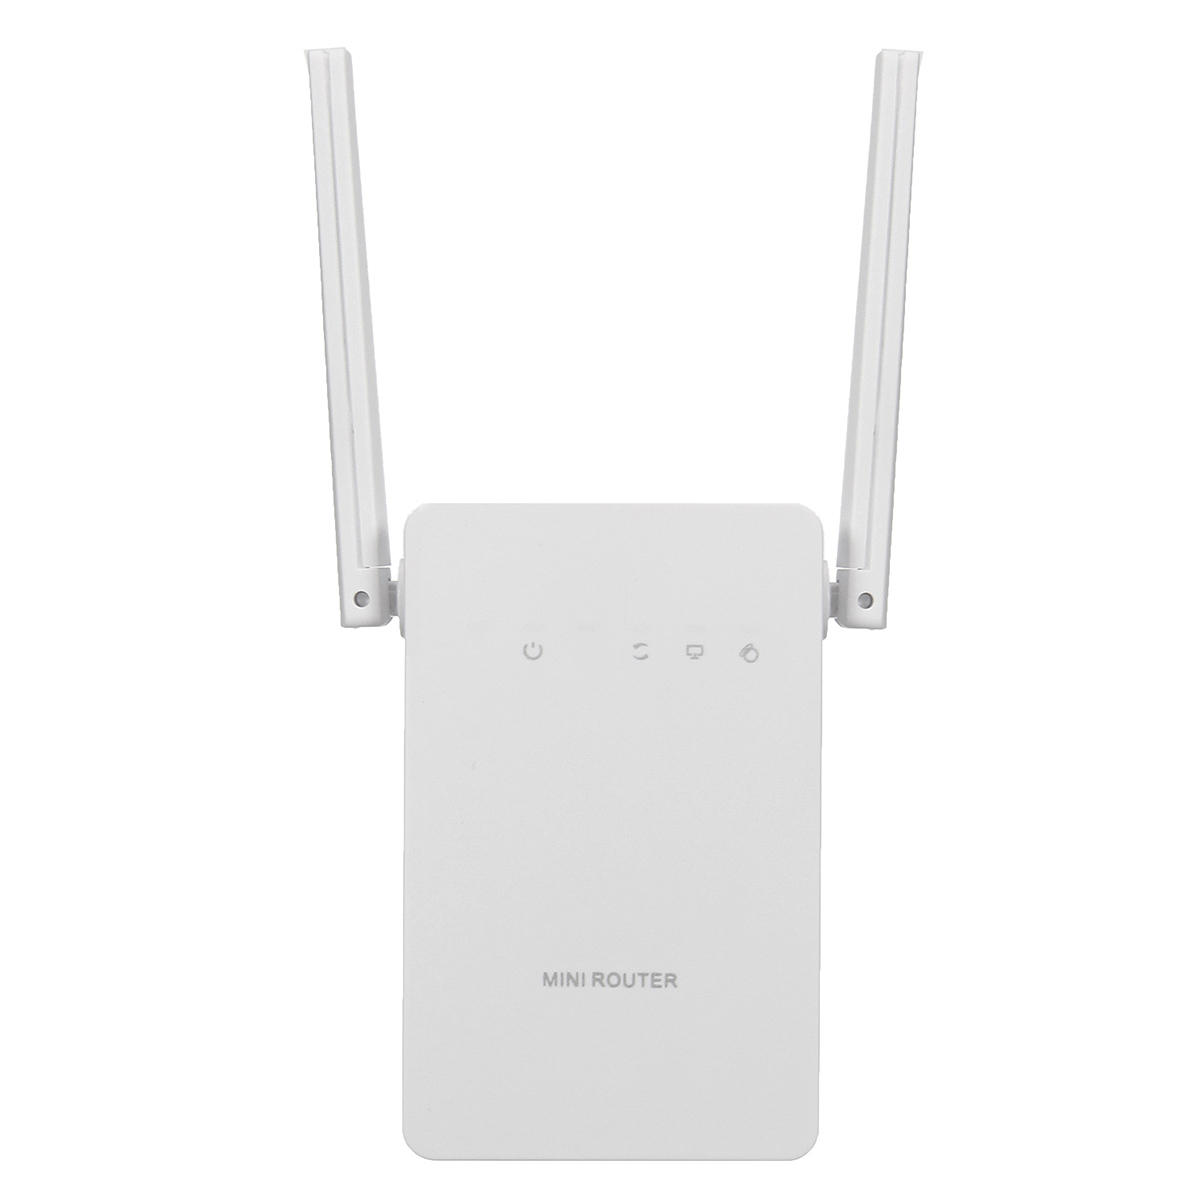 2.4GHz 300Mbps Wireless WiFi Range Extender Router AP US Plug